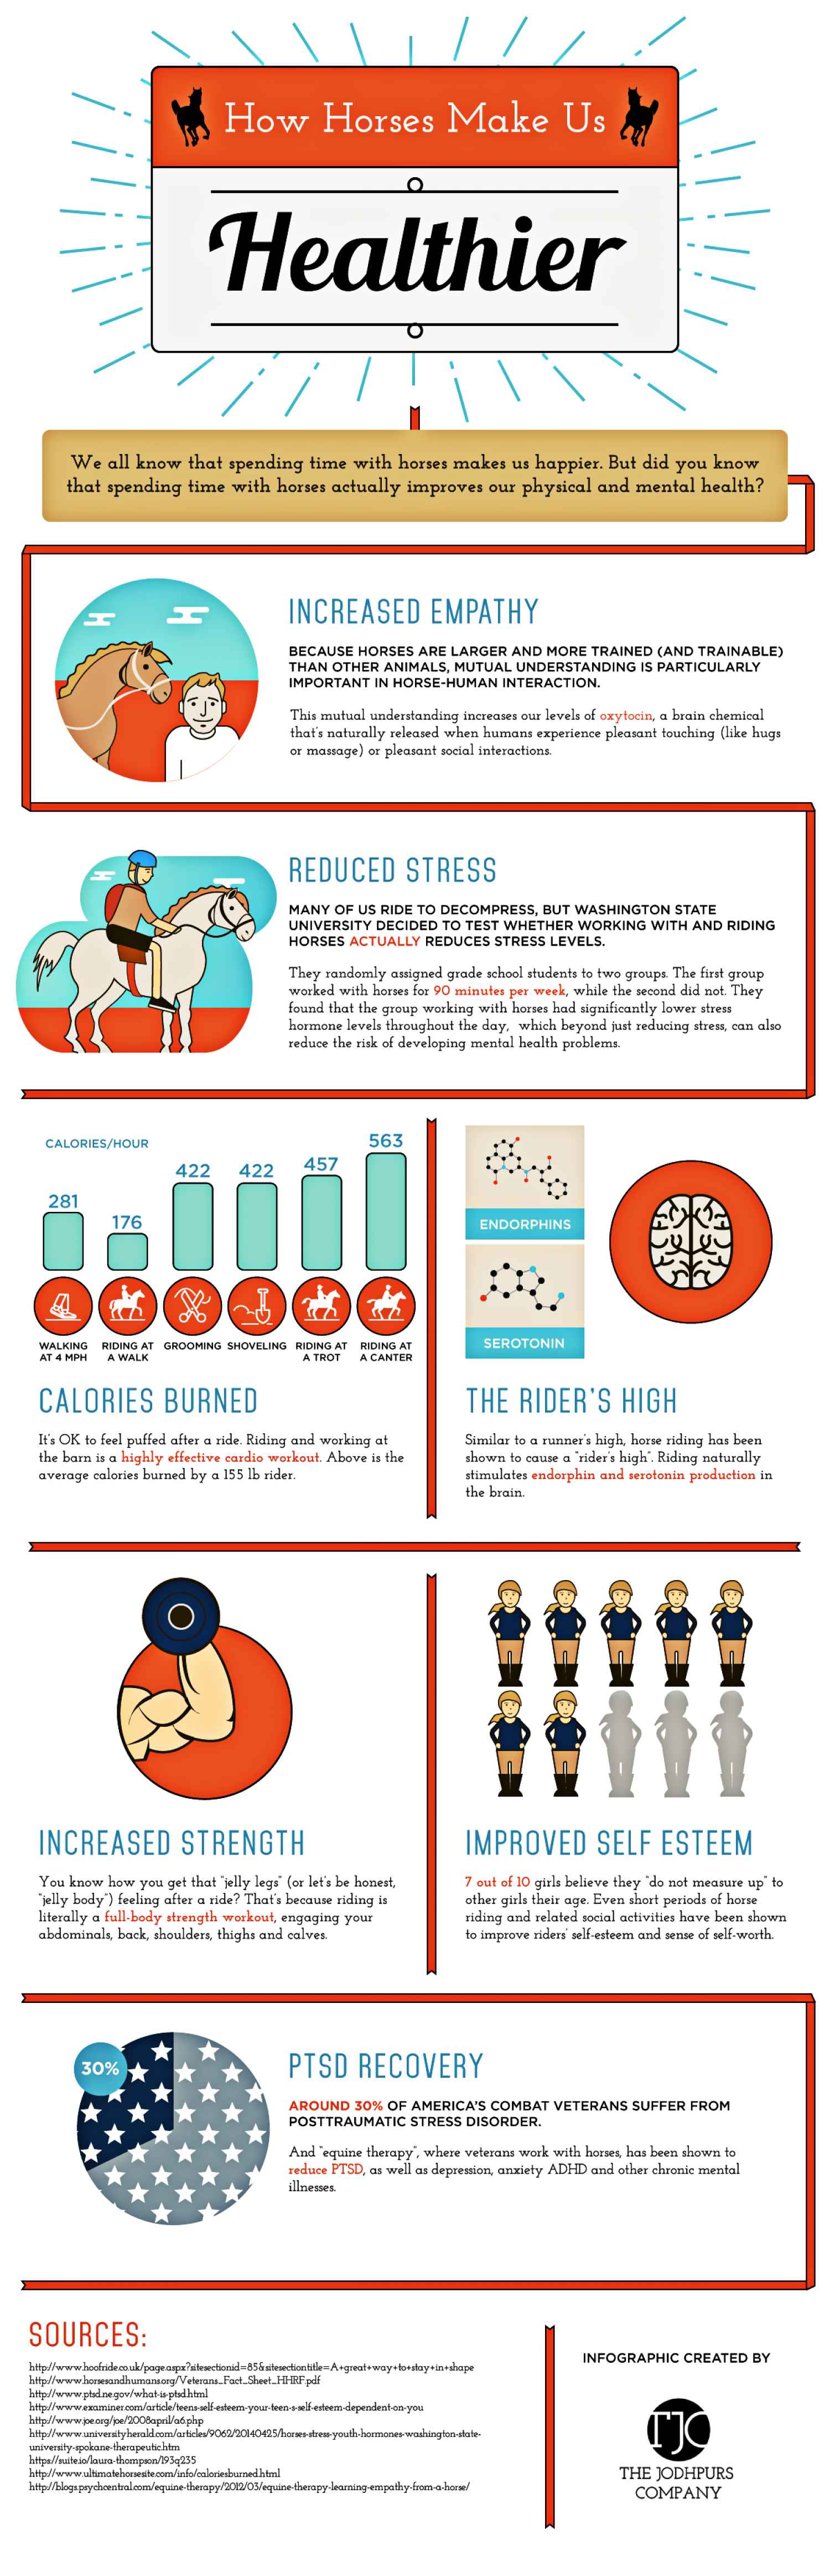 Horses and Health: How Horses Make Humans Healthier Infographic